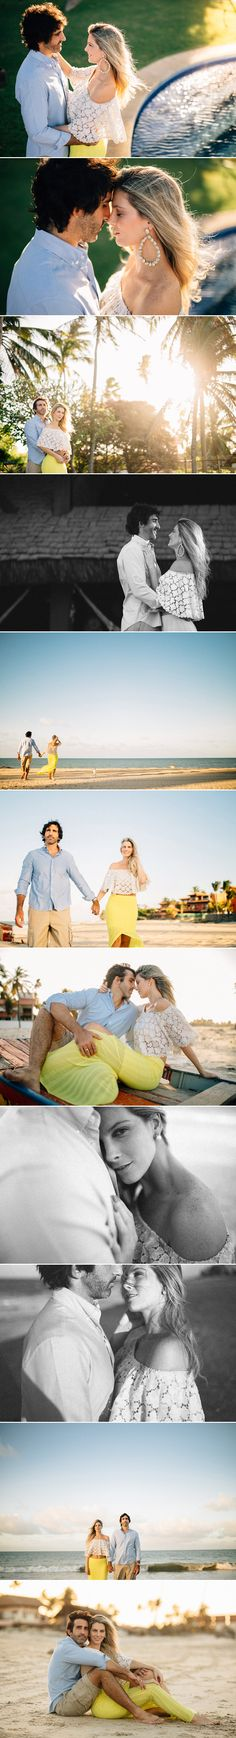 Engagement Session ideias. E-session on the beach. Brazil wedding photographer, sessão de casal na praia do cumbuco. Fotos de casal na praia.